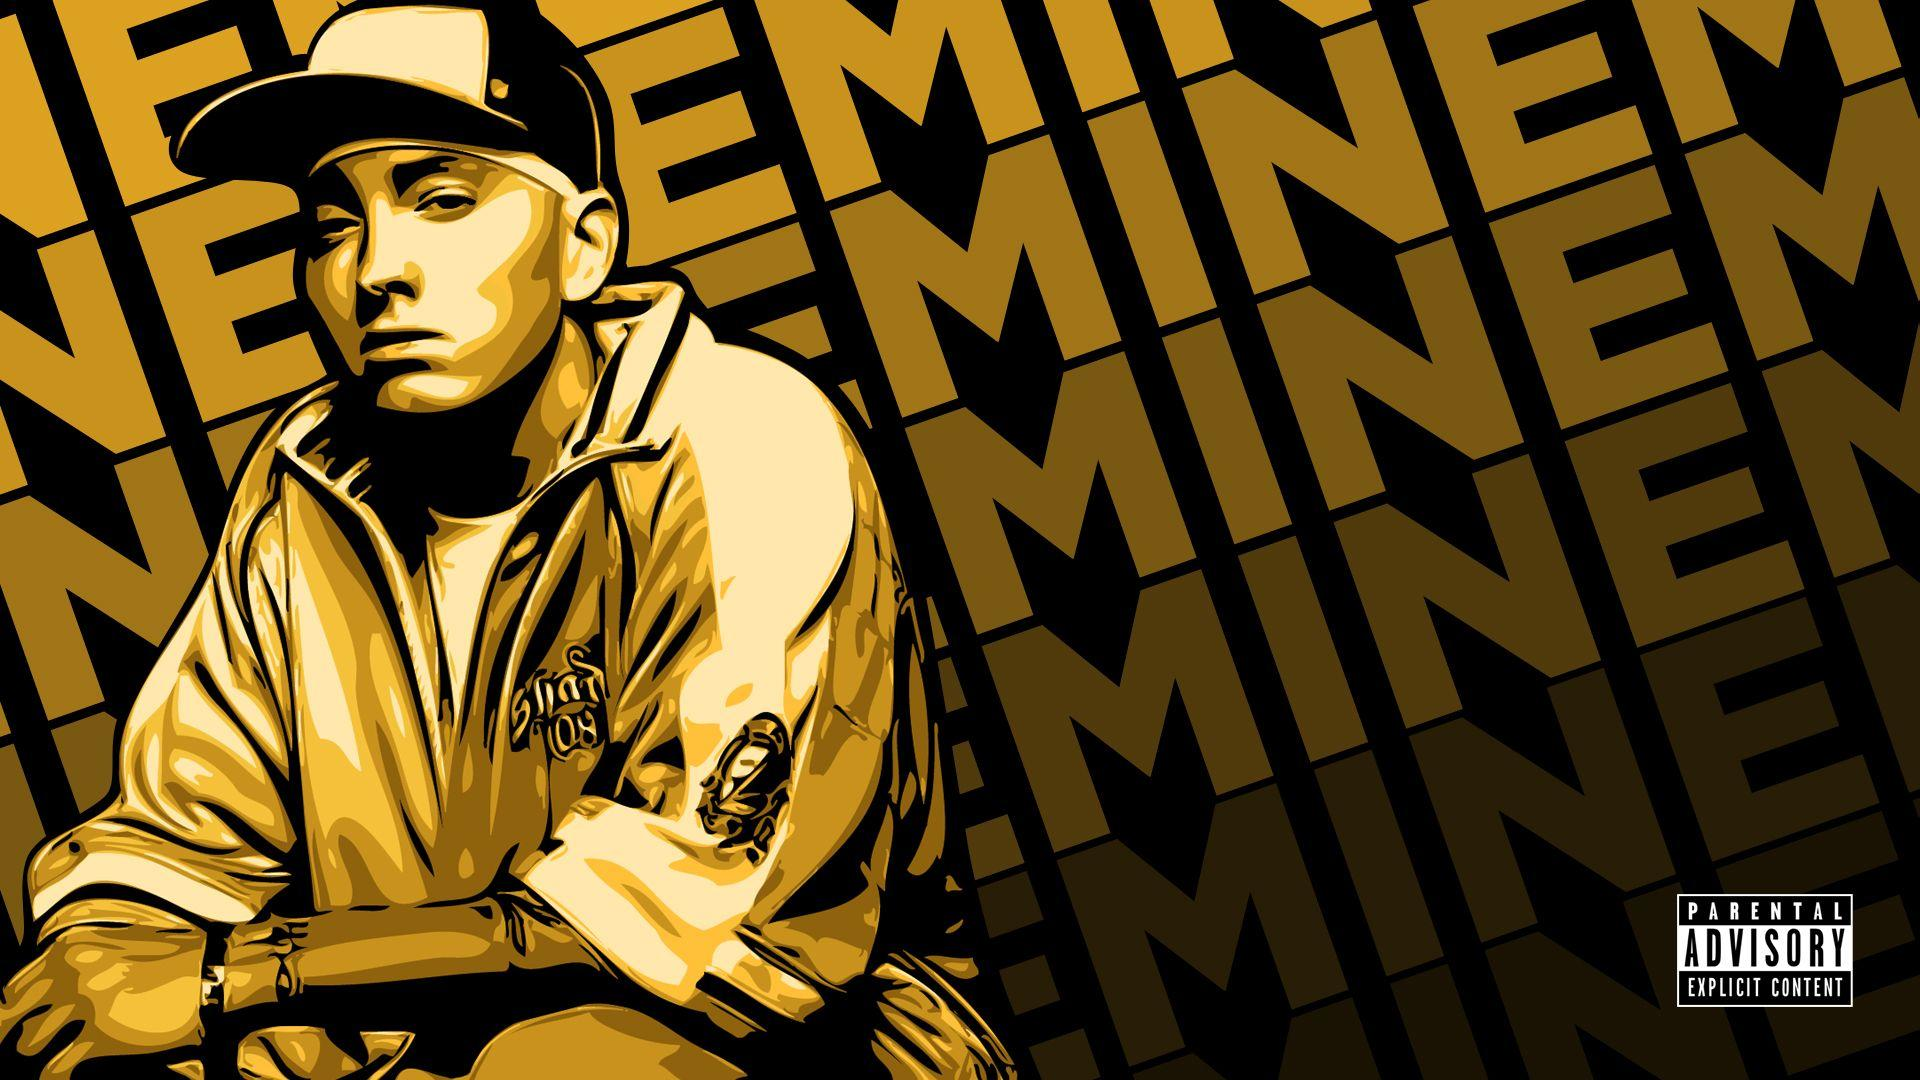 eminem wallpapers - photo #33